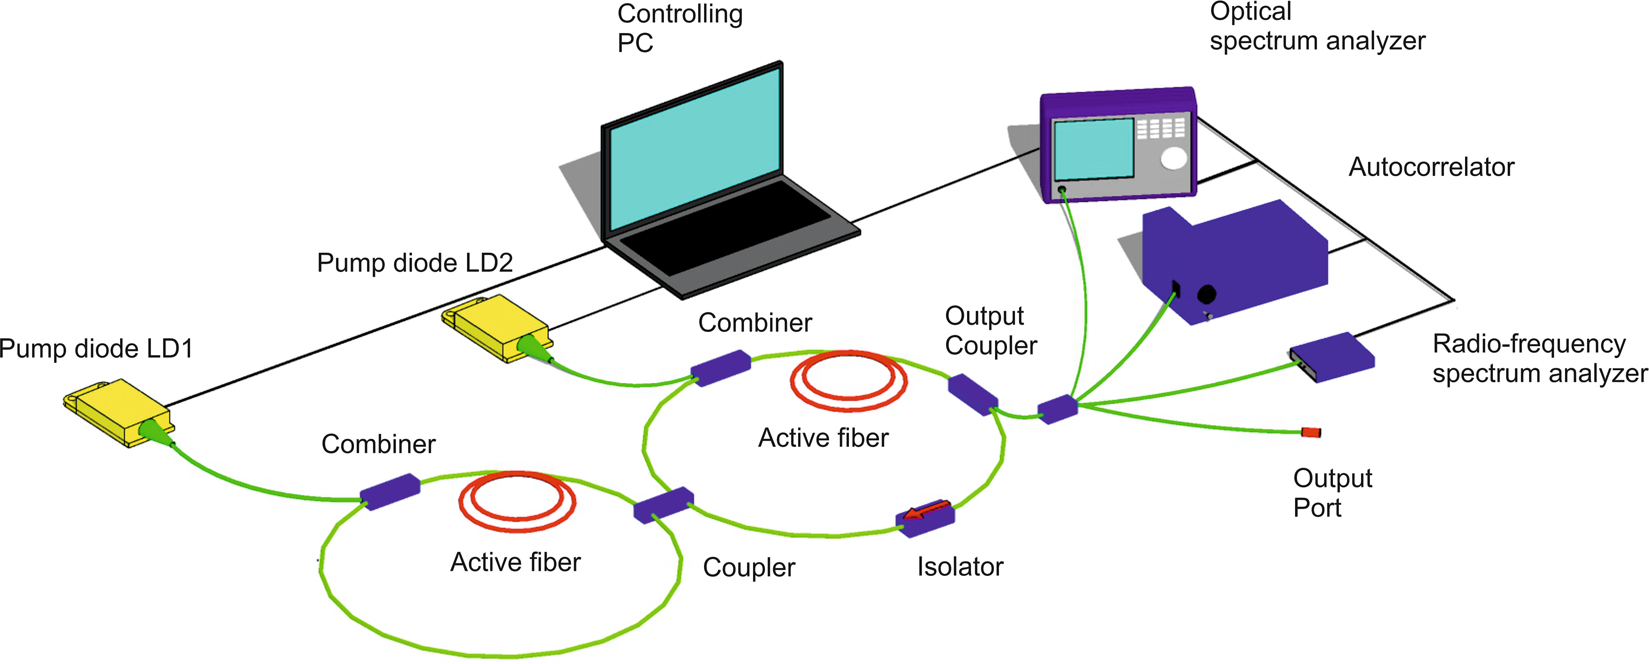 Machine Learning Methods for Control of Fibre Lasers with